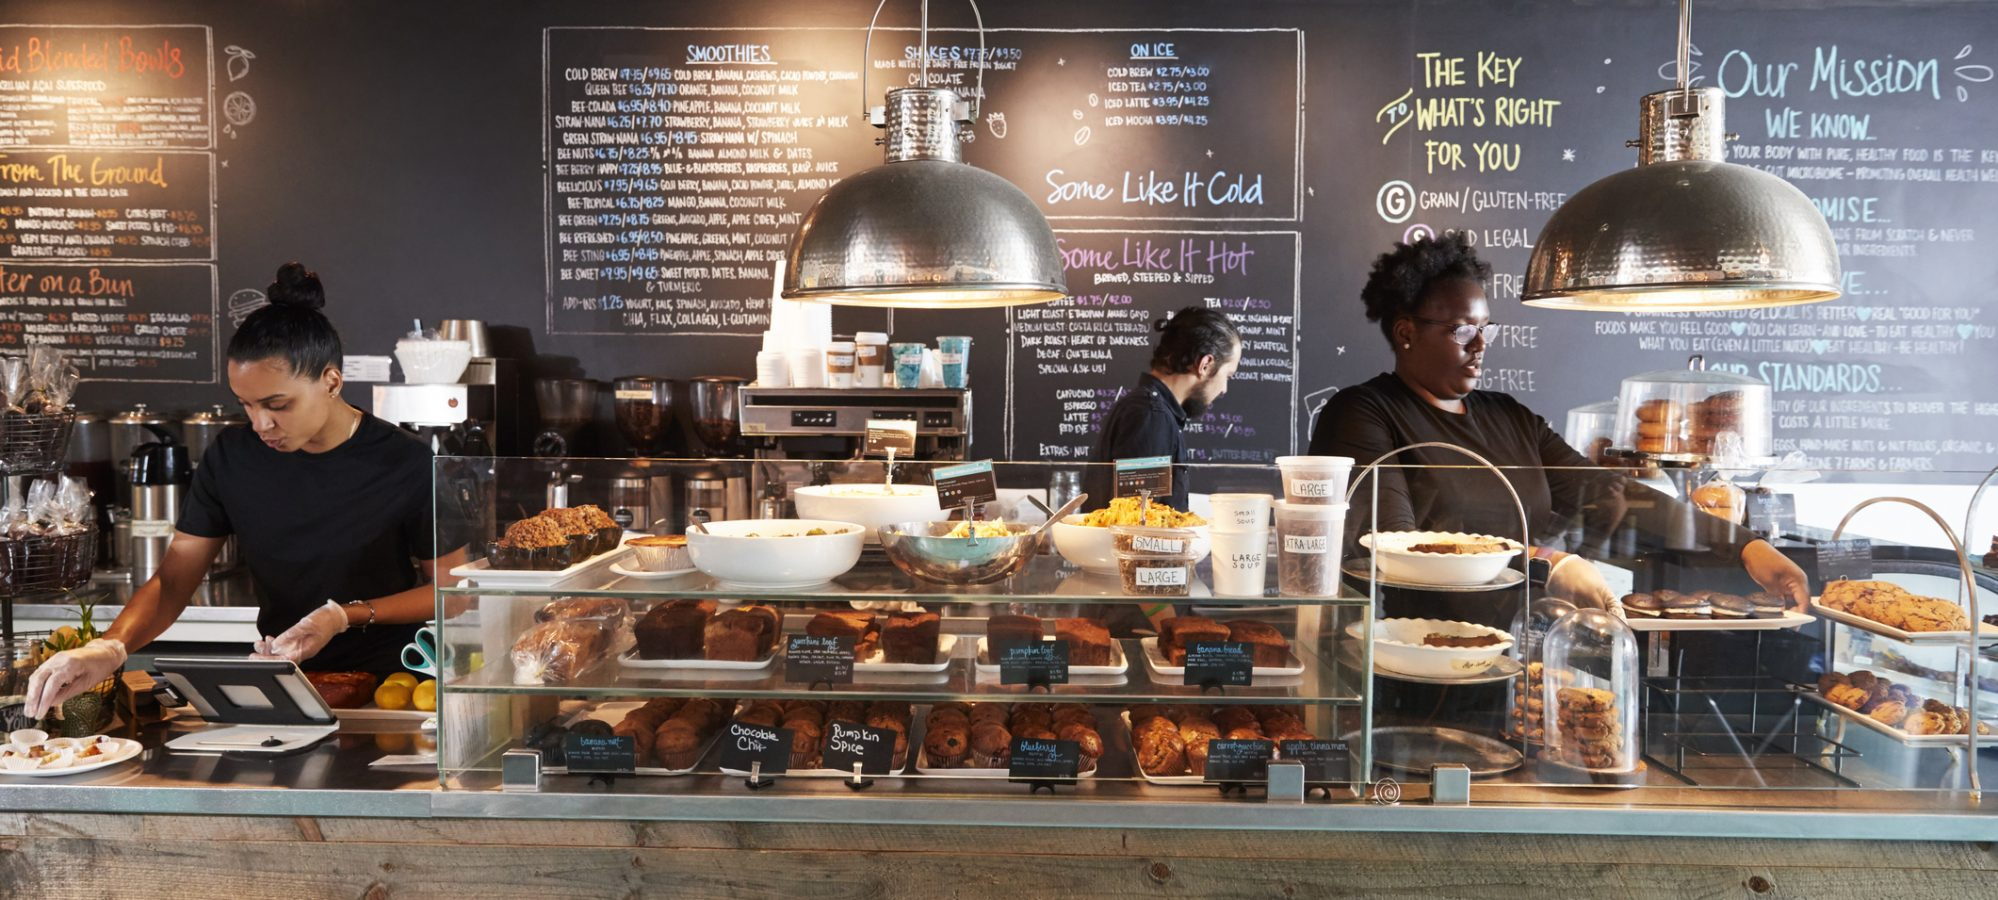 Image of minimum wage staff working behind counter in coffee shop